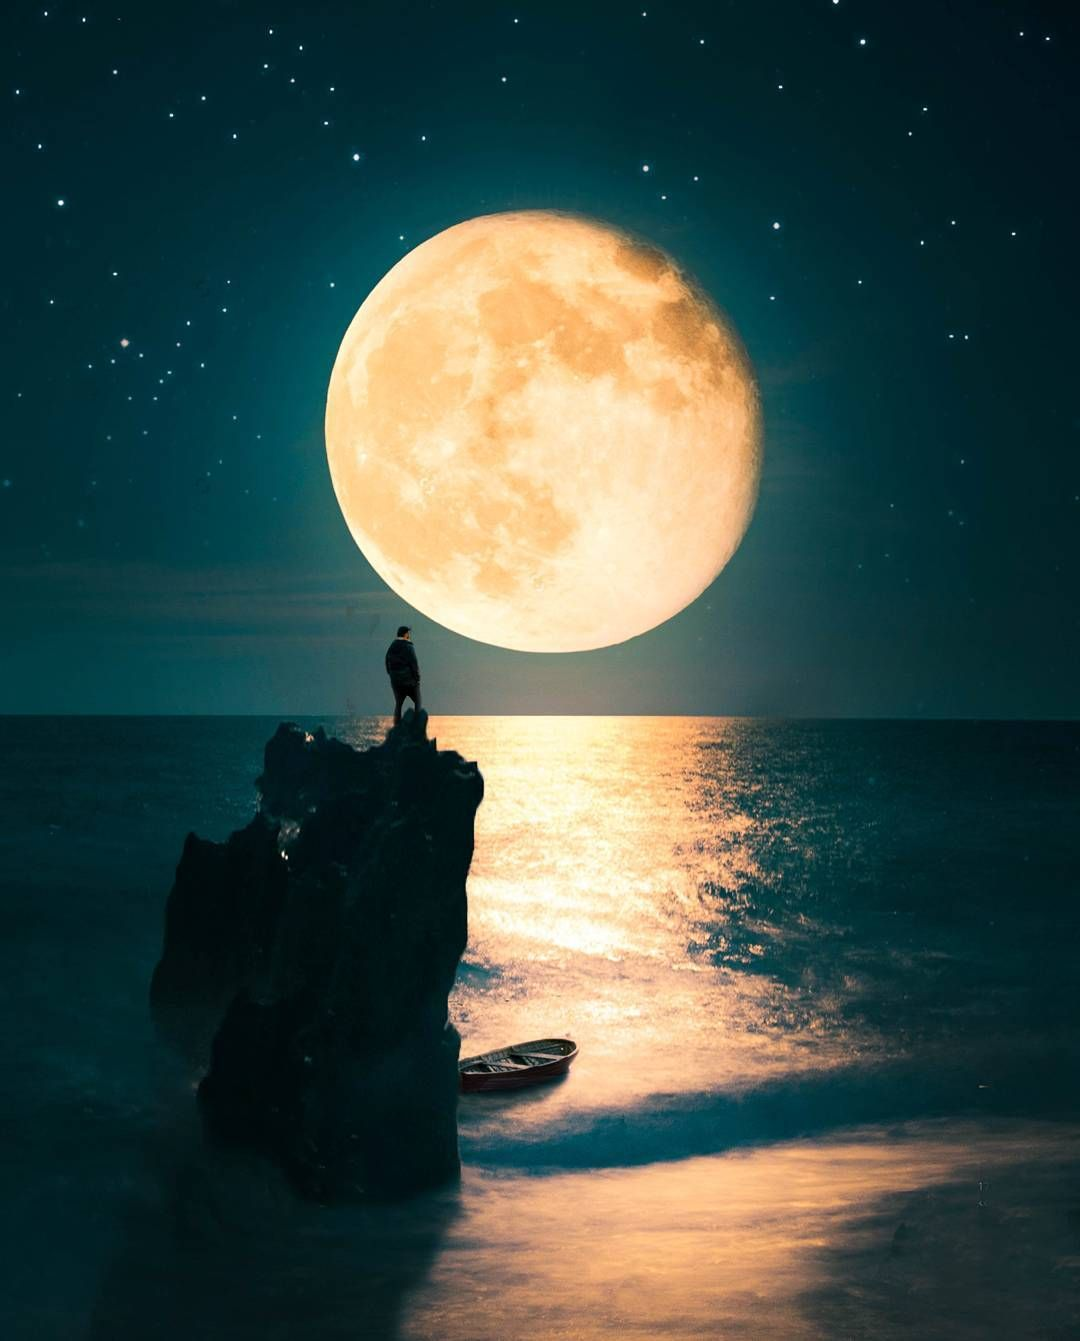 Dreaming A Dream The Surreal Digital Compositions Of A 19 Year Old Creative Night Sky Photos Surrealism Beautiful Moon